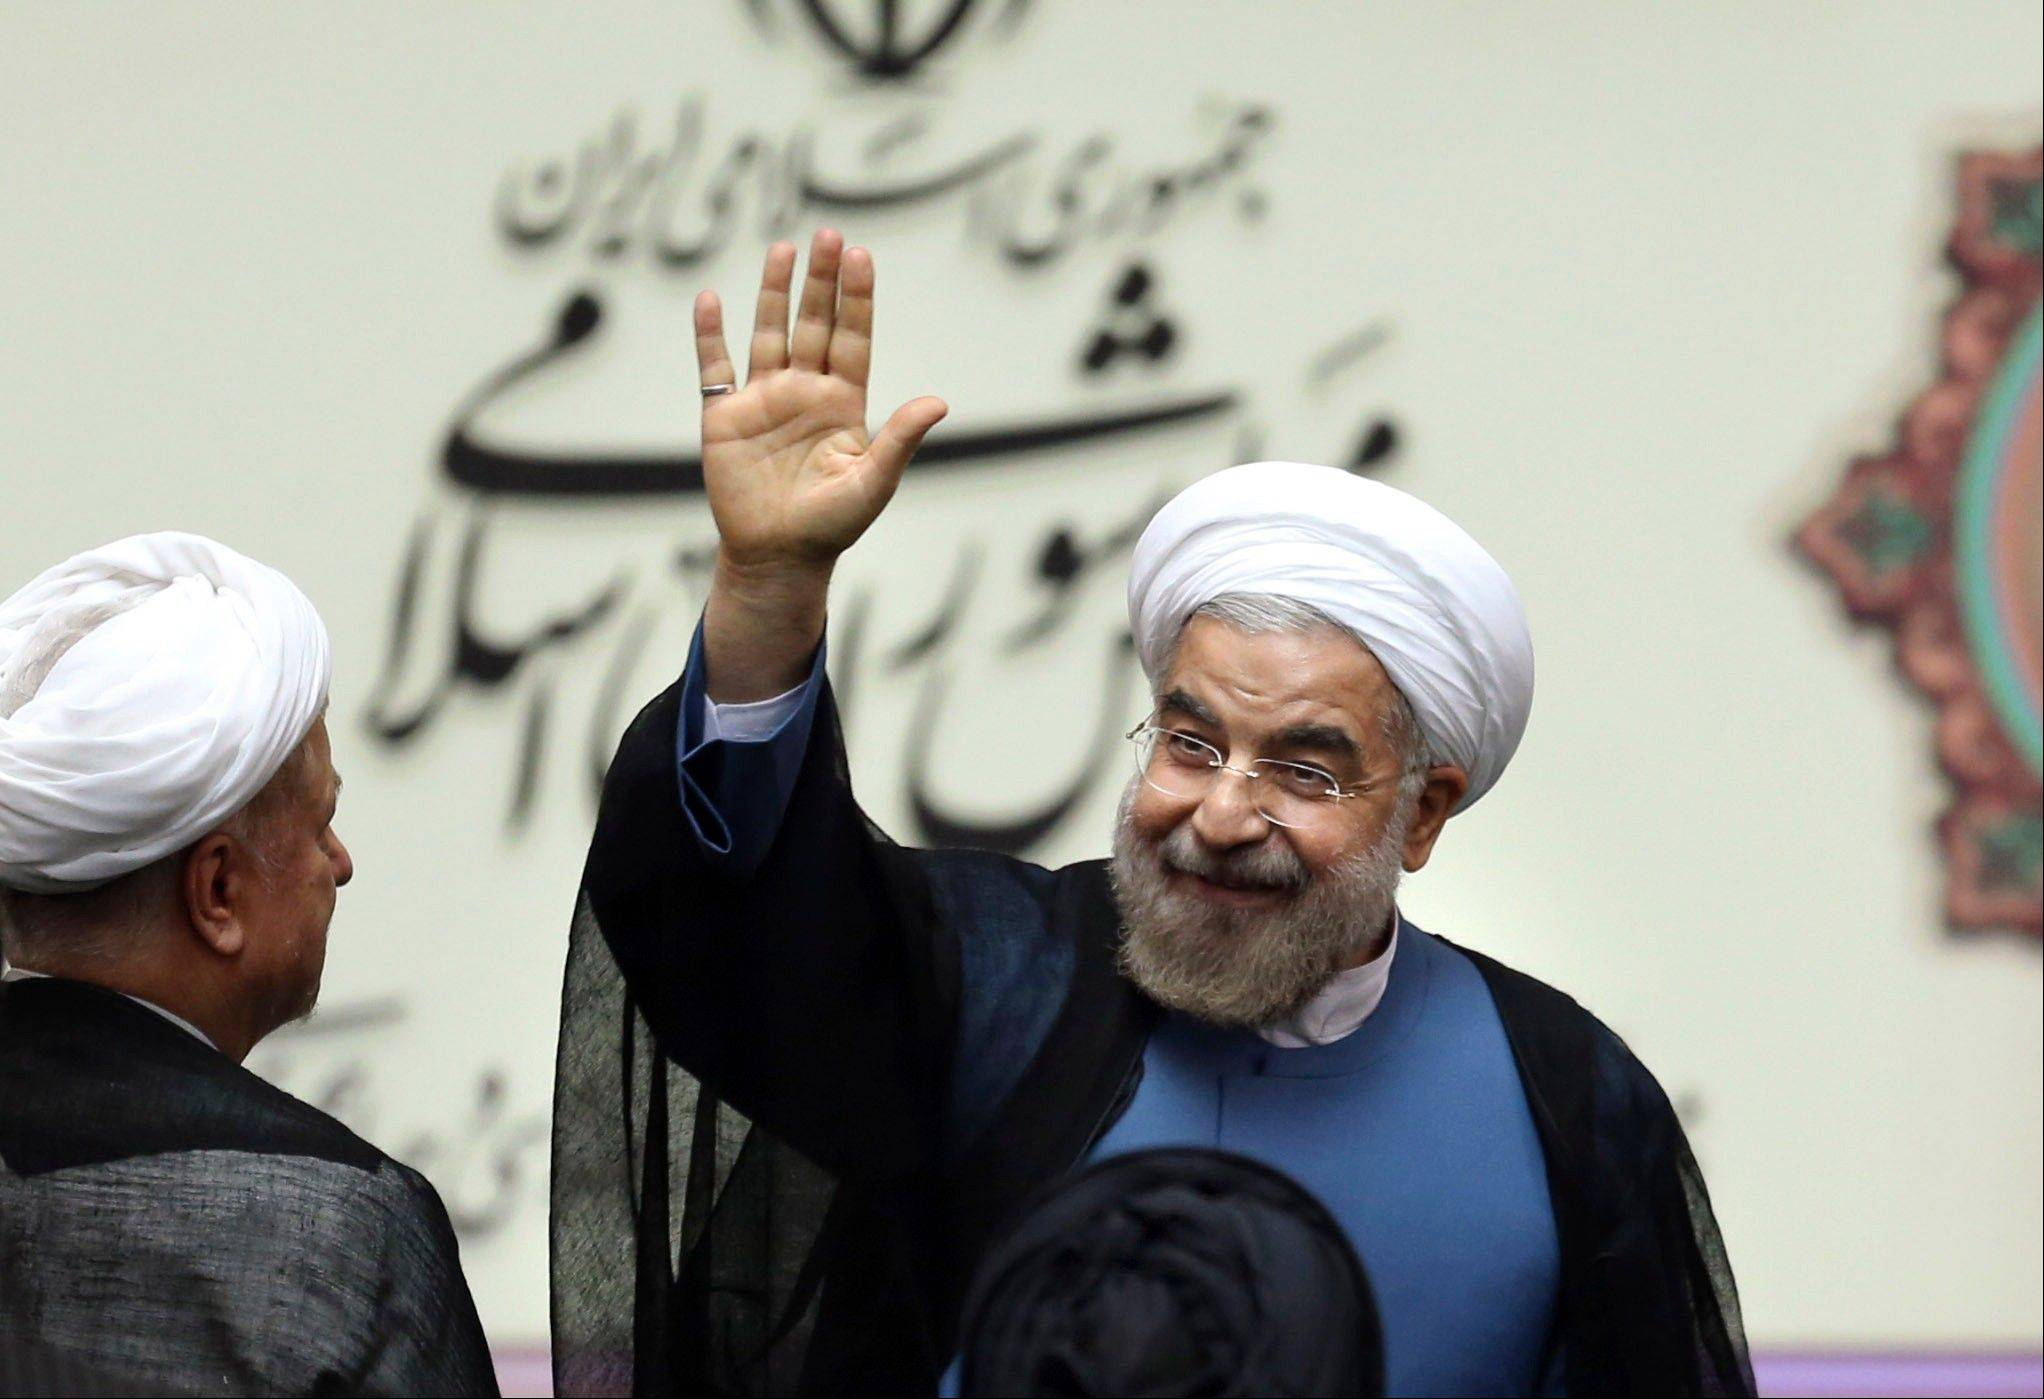 Iran's new President Hassan Rouhani. A war-weary Congress generally backs President Barack Obama's outreach to Iran, but with tougher U.S. economic measures against Tehran on the way, the president's diplomatic task could get harder if he doesn't make quick progress.